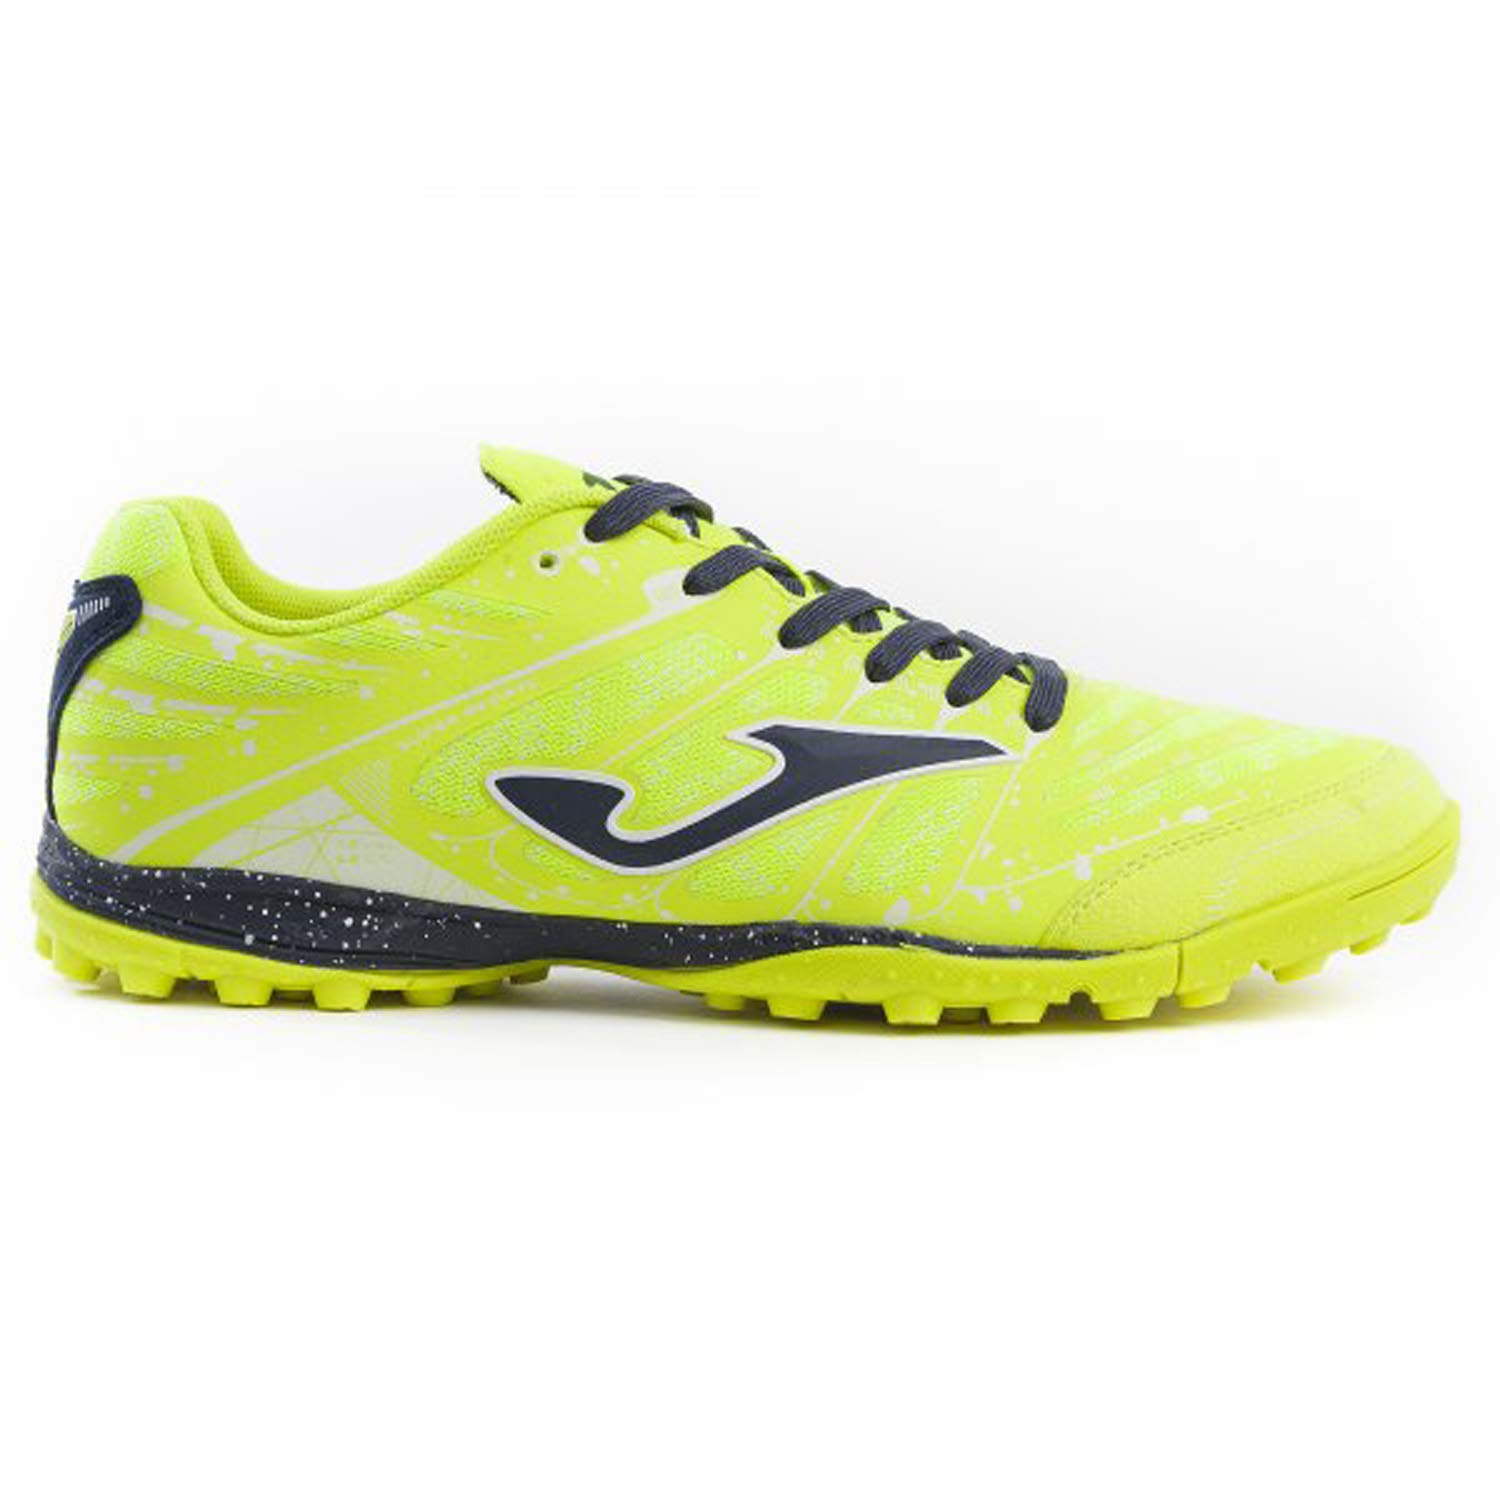 yellow FLUO Joma Soccer shoes Super REGATE Turf 906 Yellow Fluo Calcetto Scarpa